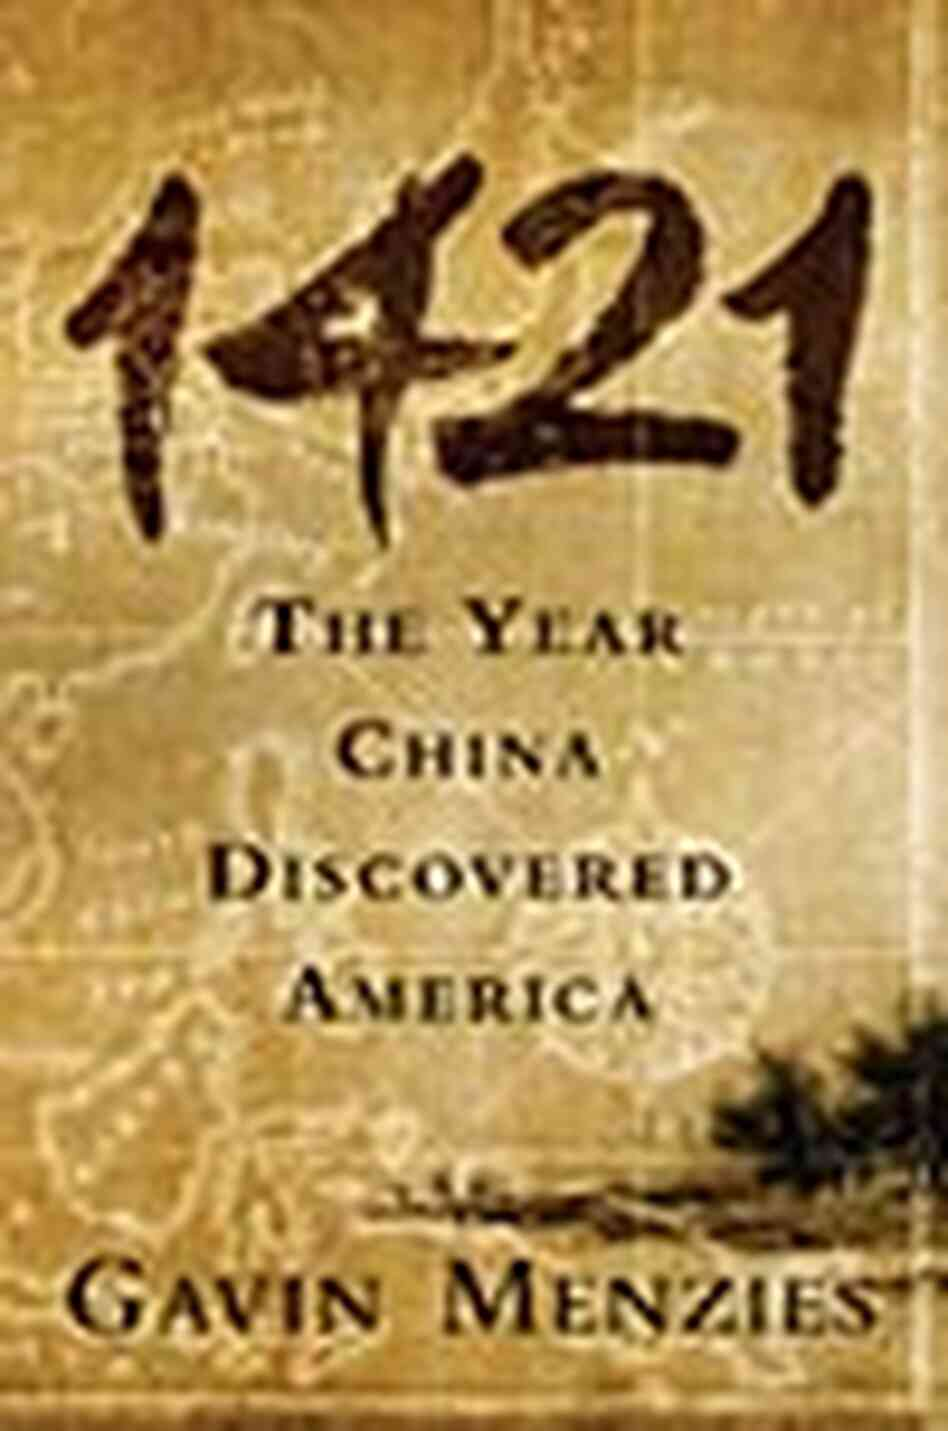 '1421, The Year China Discovered America' book cover